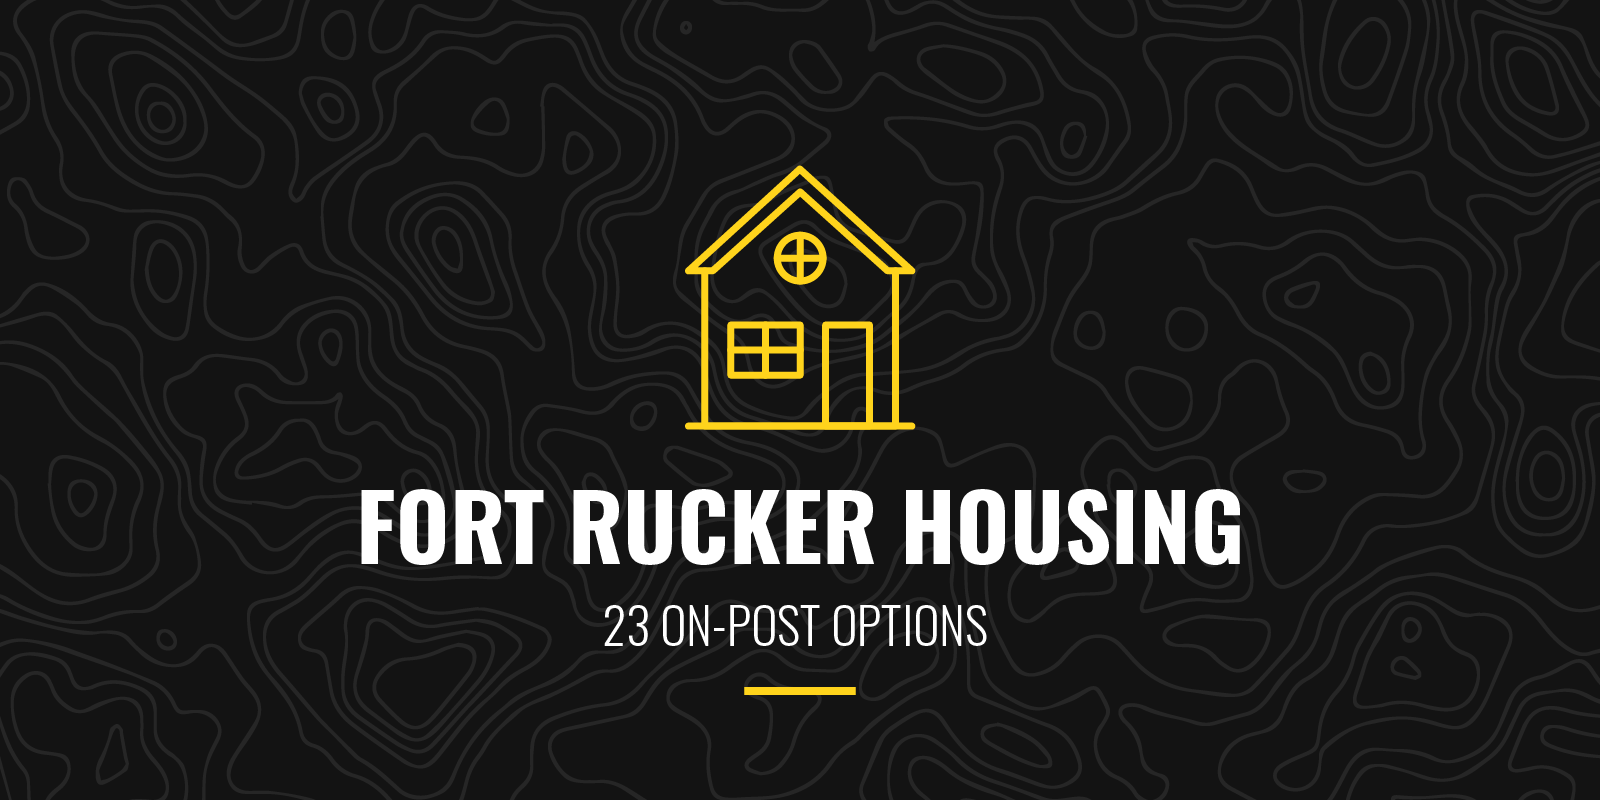 Fort Rucker Housing: 23 On Post Options